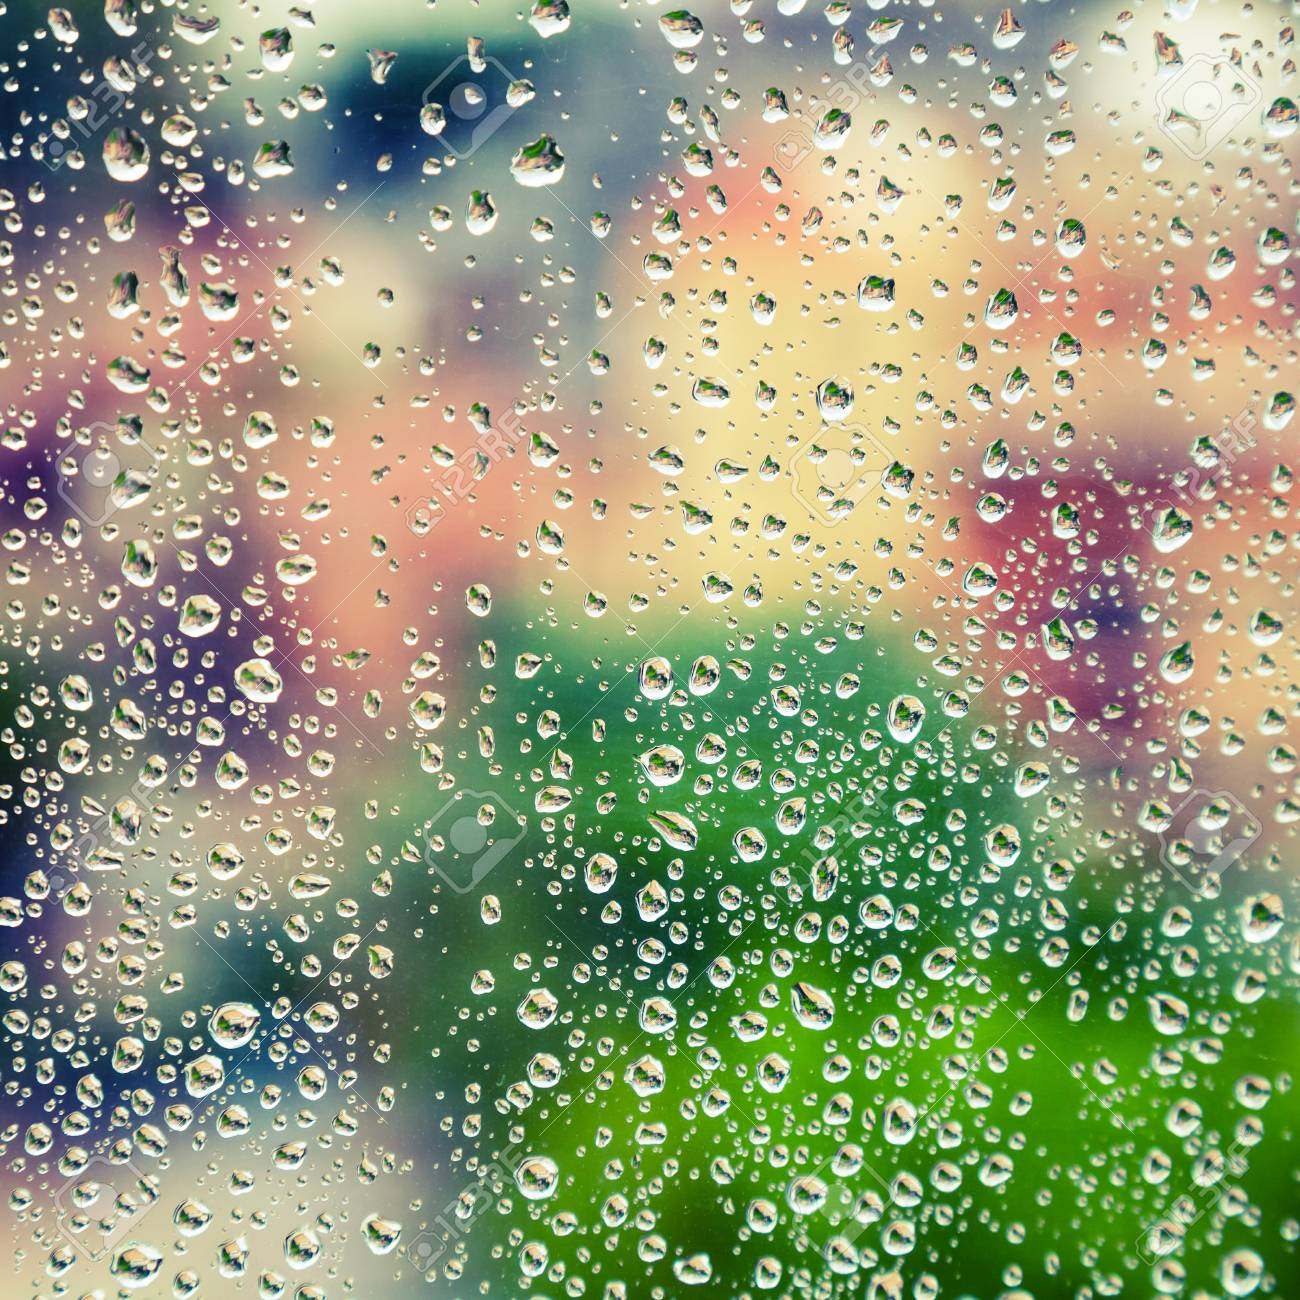 Wet Glass With Droplets Colorful Square Photo Background With Stock Photo Picture And Royalty Free Image Image 38329364